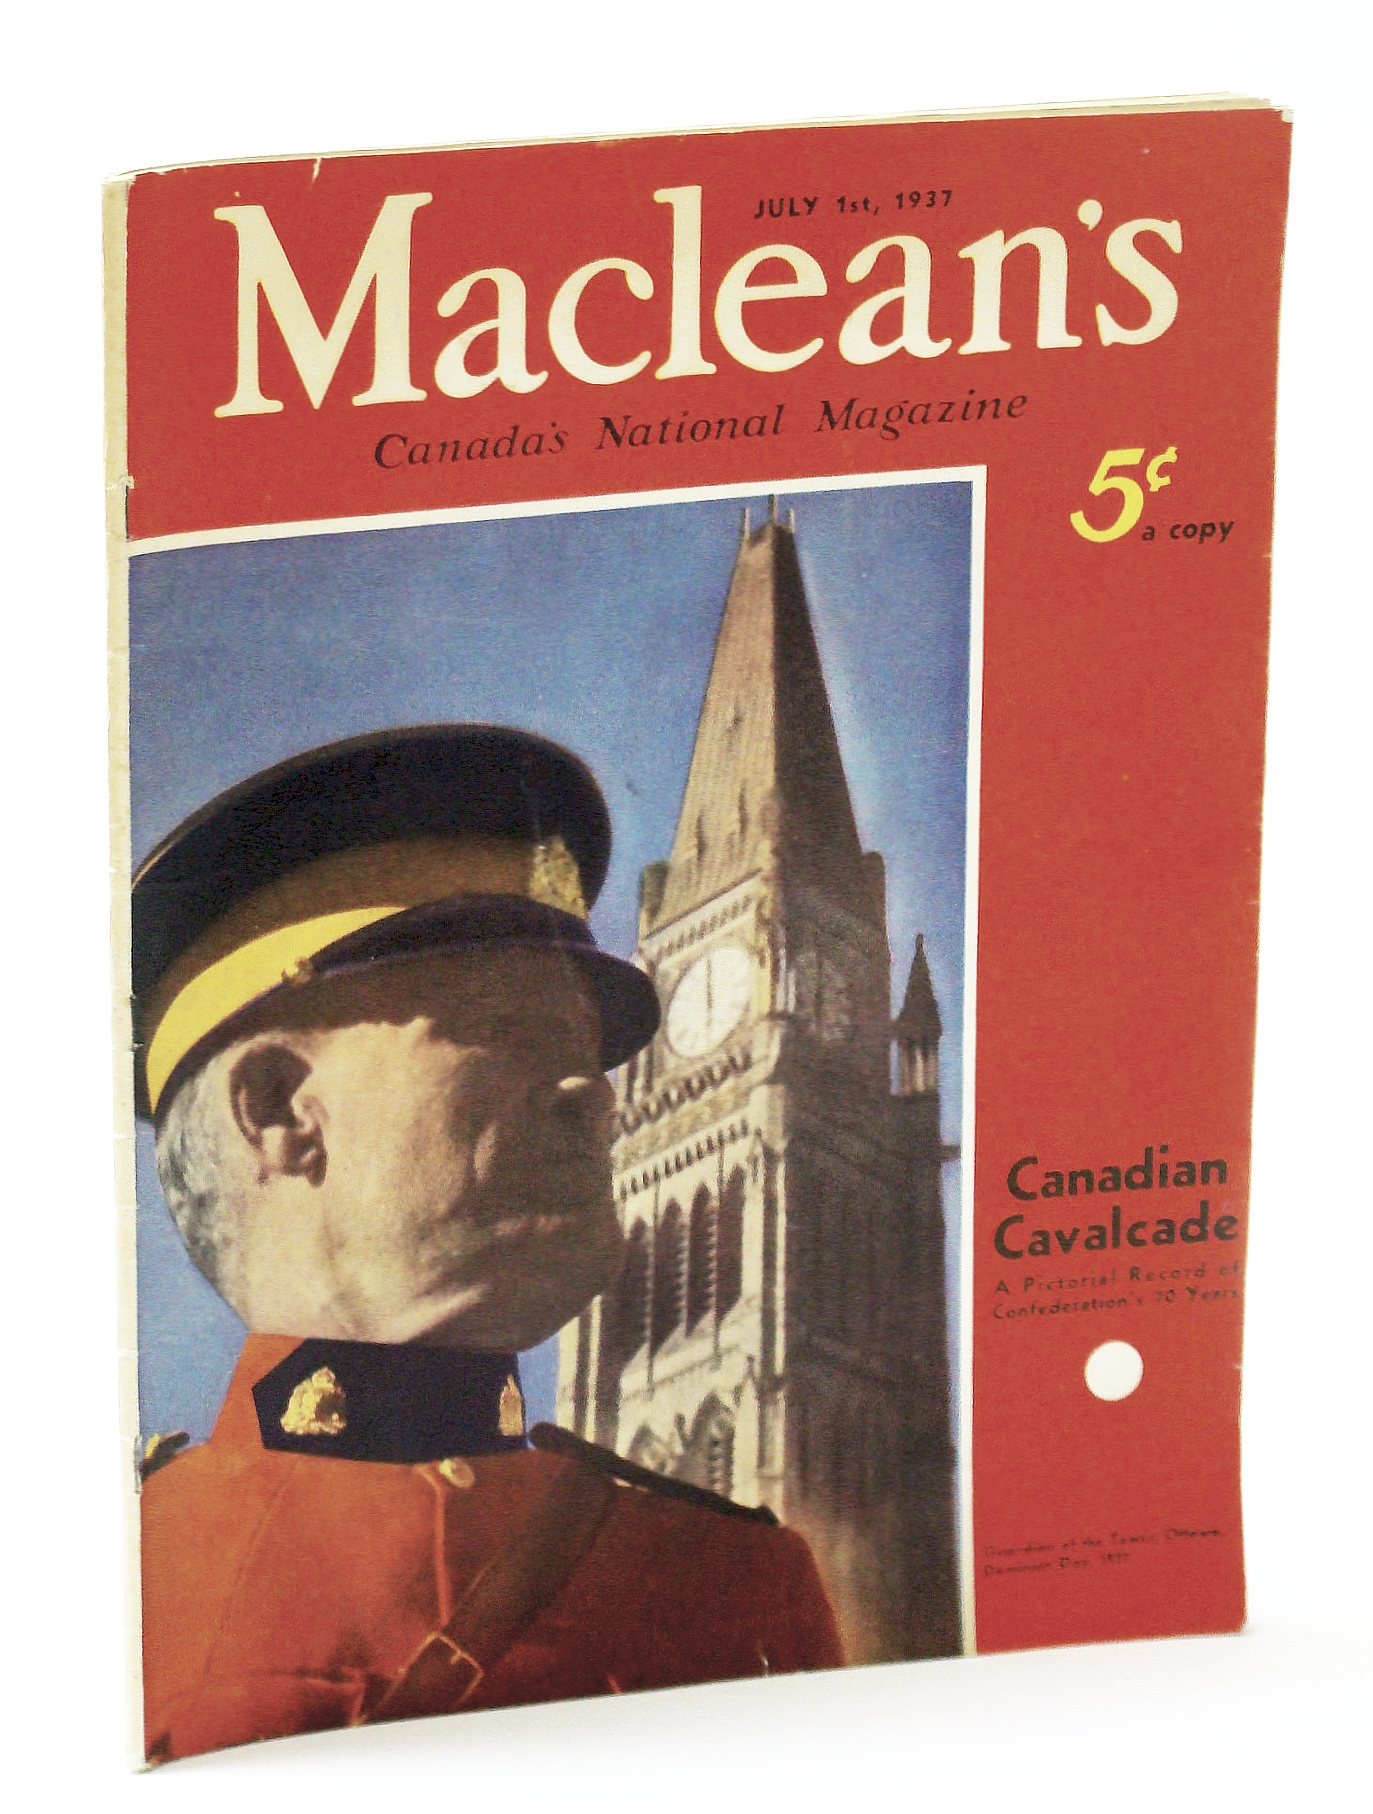 Image for Maclean's Magazine July 1, 1937 *Canadian Cavalcade: A Pictorial Record of Confederation's 70 Years*